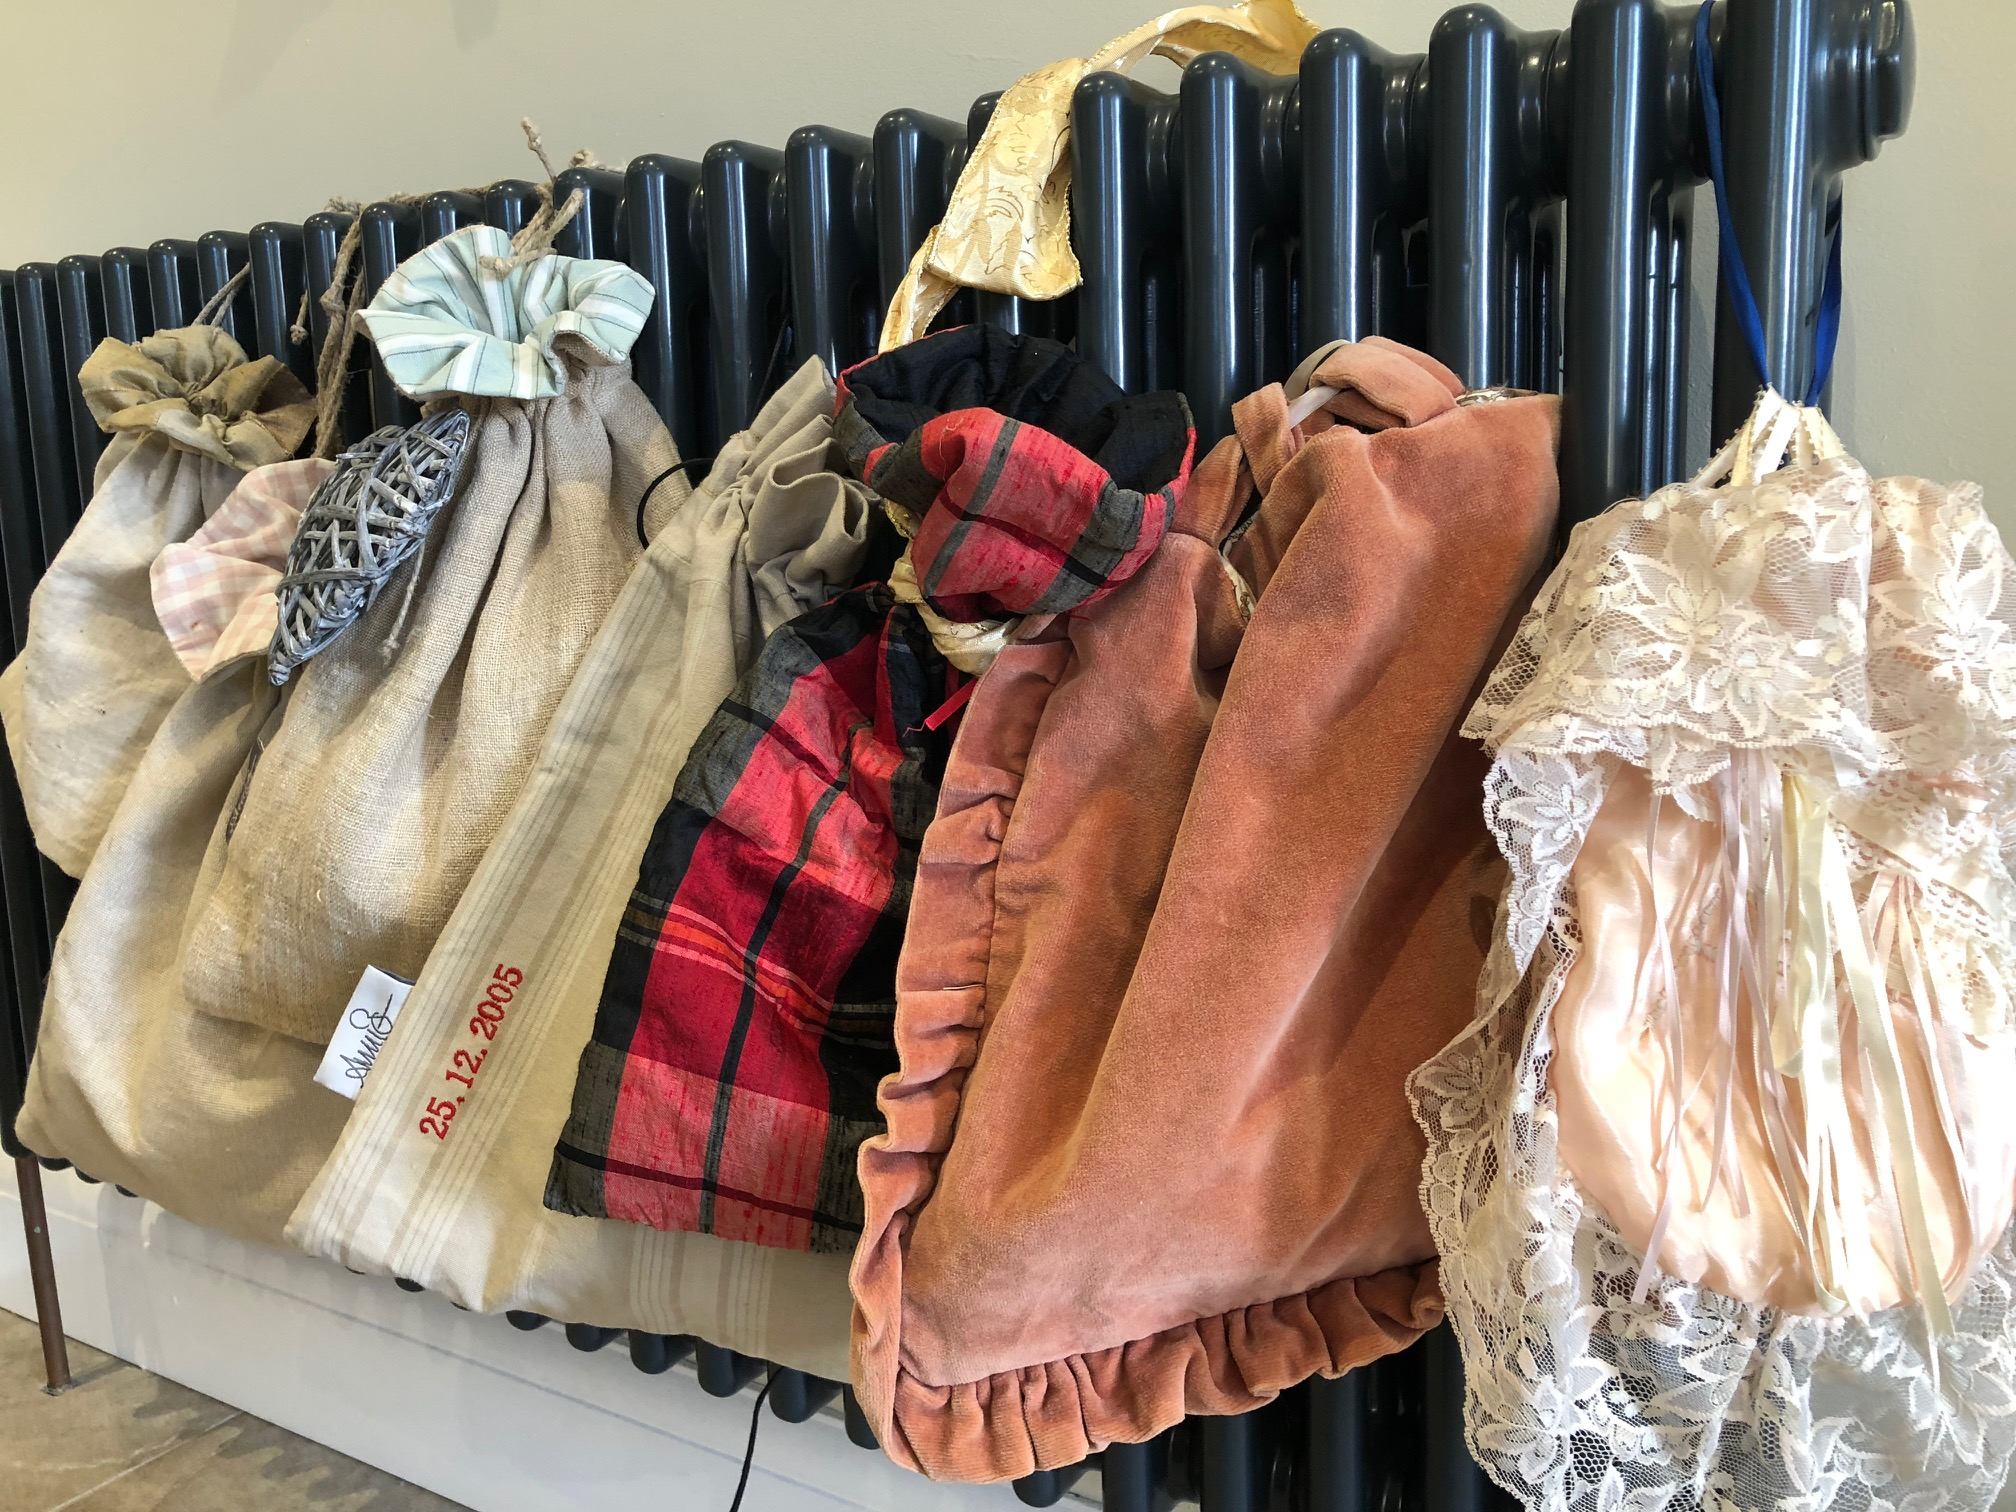 A sample collection of Vintage Bags from over 30 years.